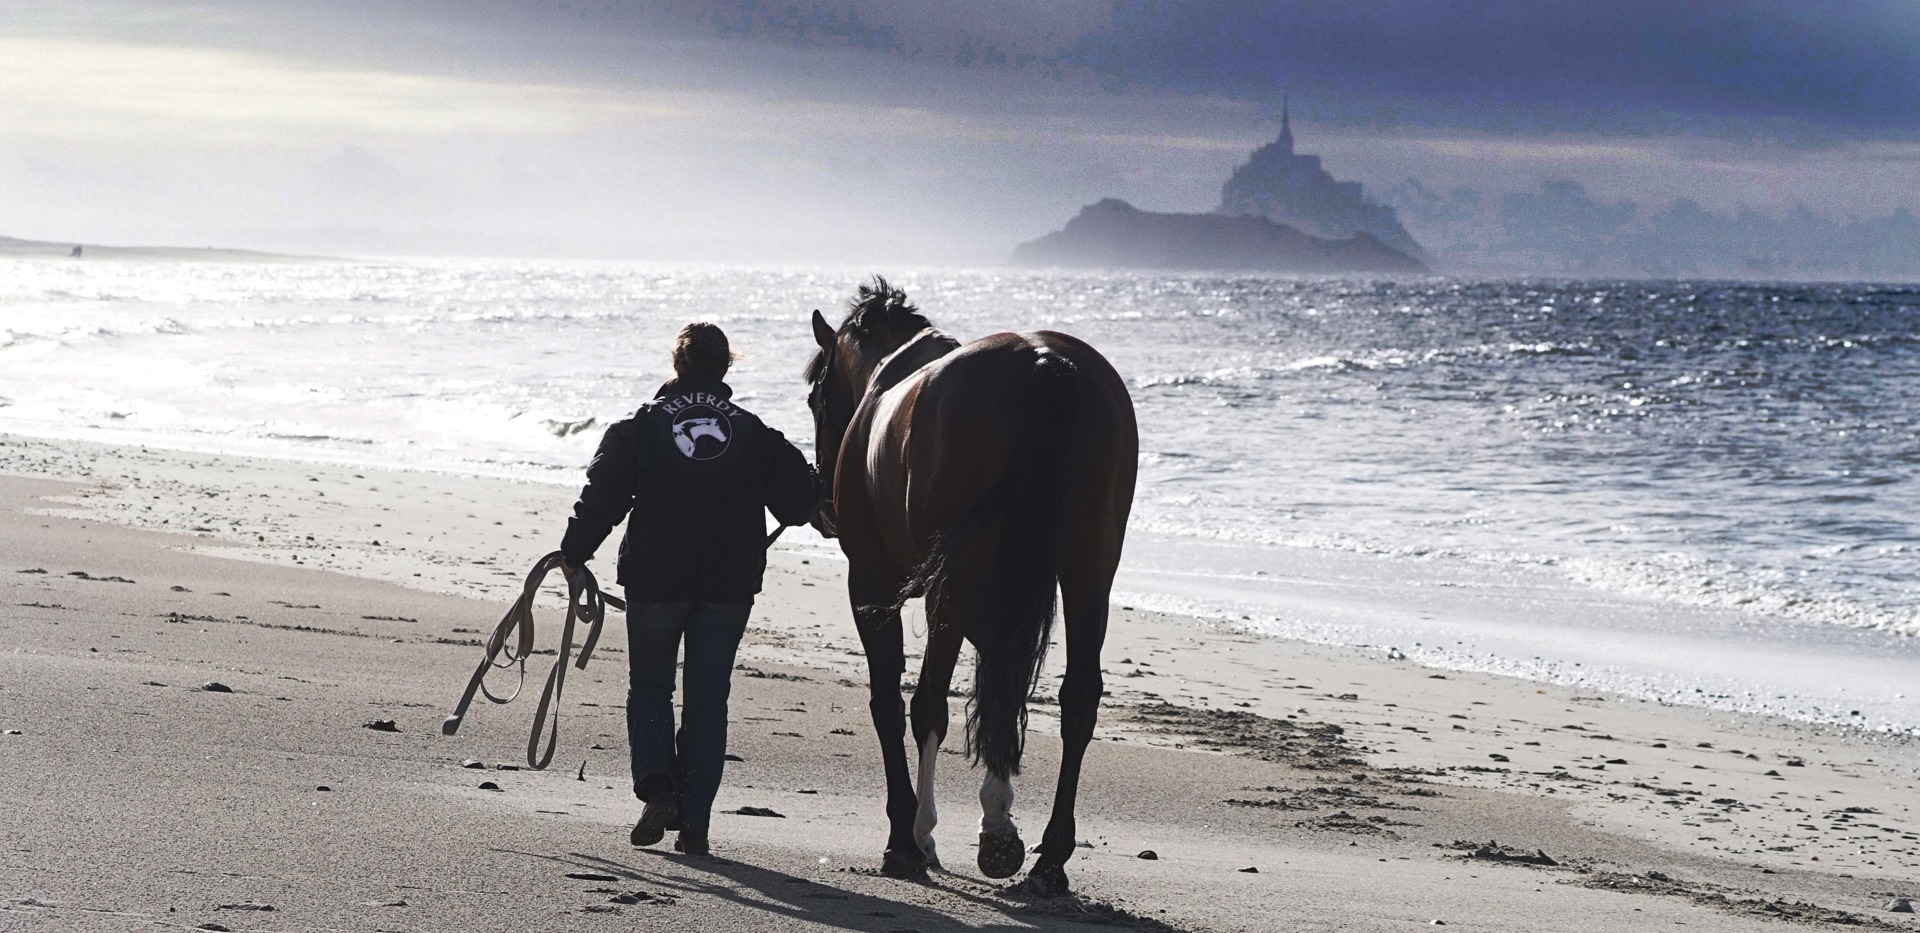 A man and a horse, walking on the beach